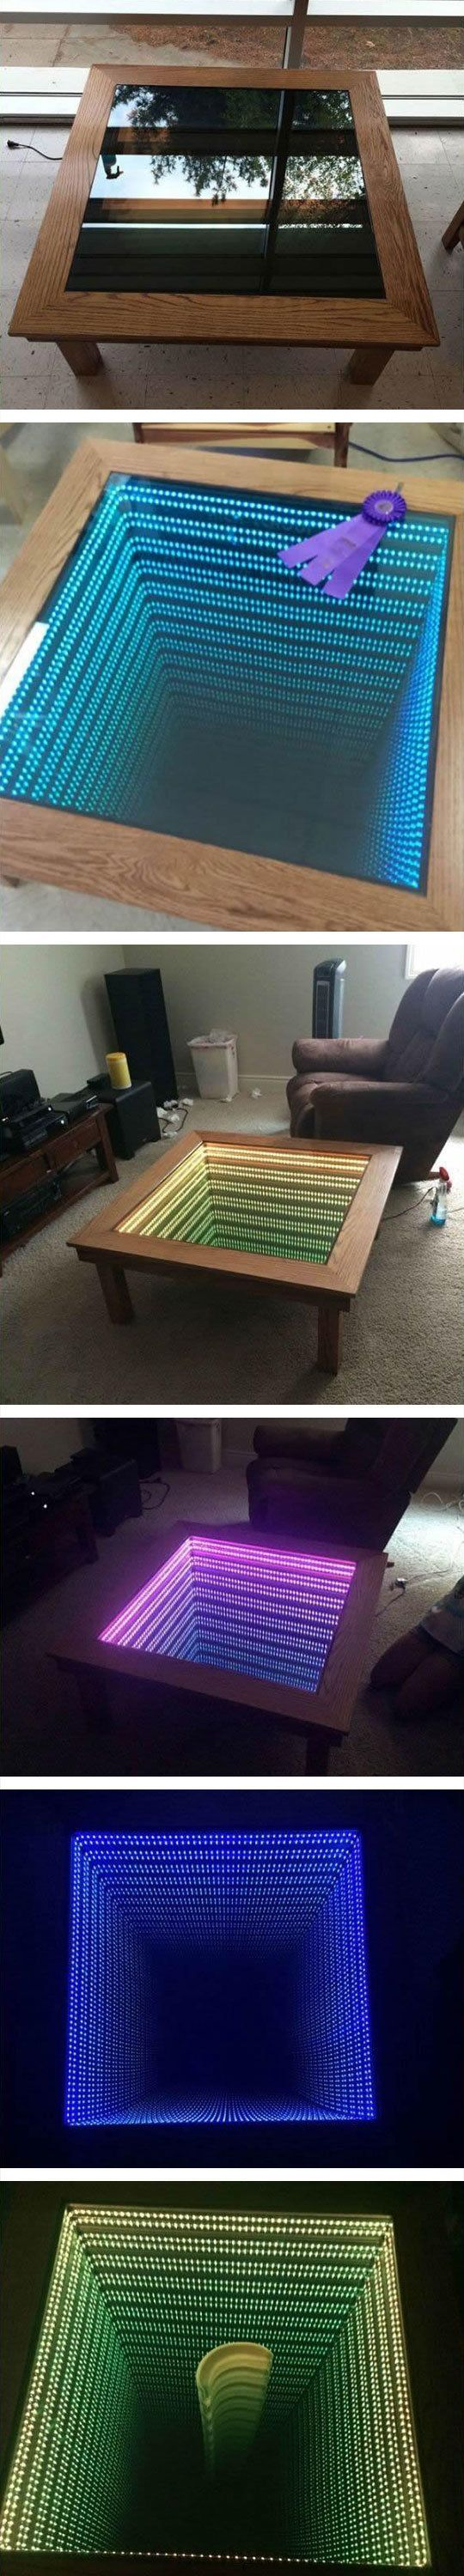 how to build an infinity table man cave ideas infinity table table infinity mirror table. Black Bedroom Furniture Sets. Home Design Ideas